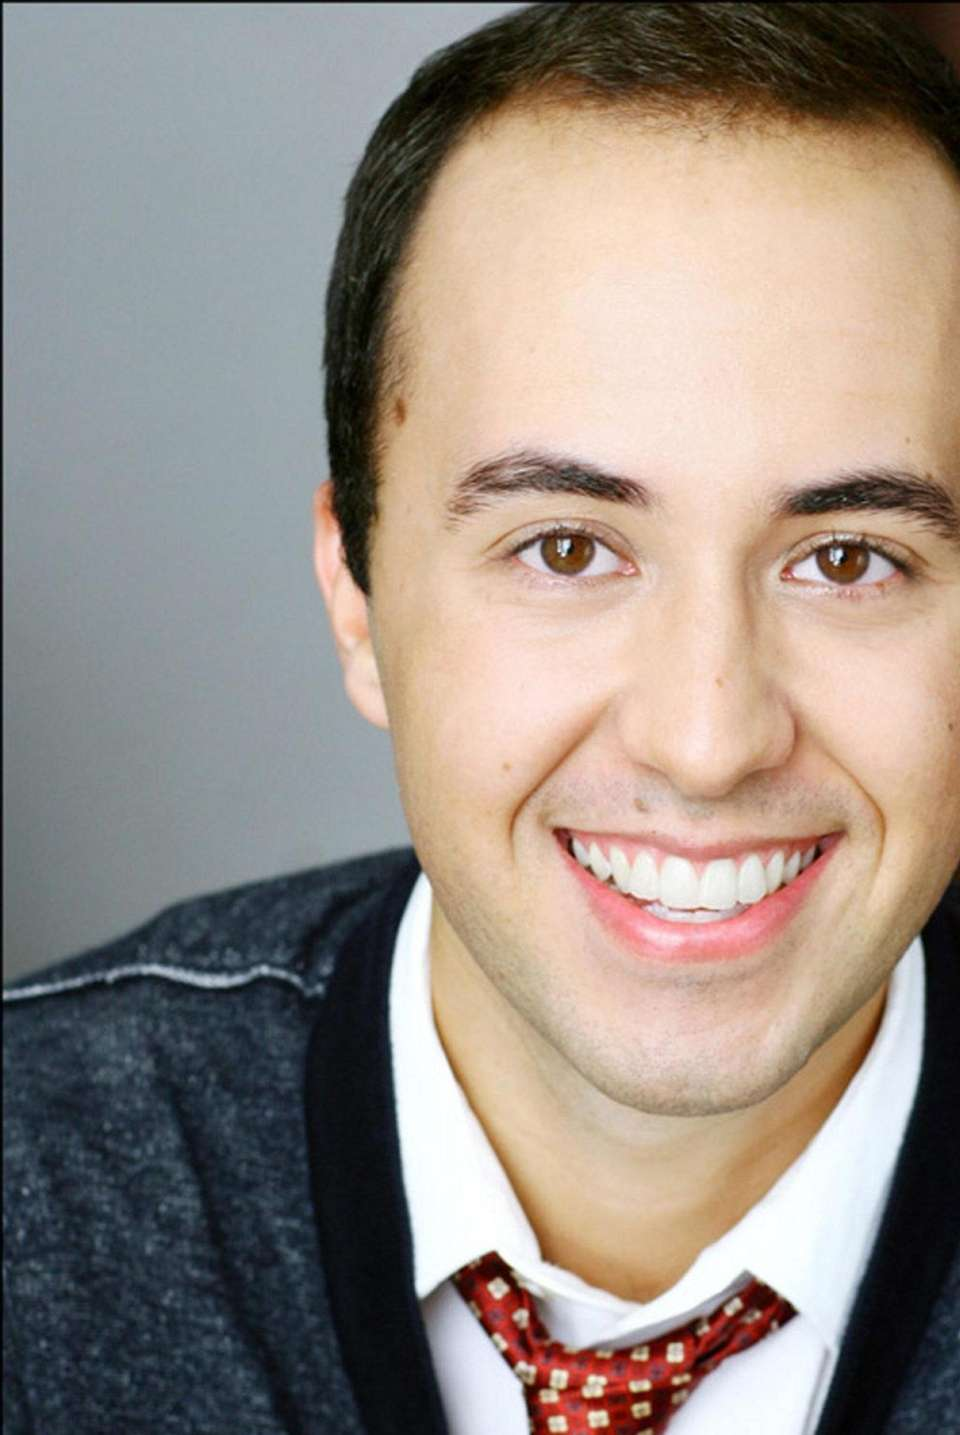 Michael Verre, a musical theater performer who appeared